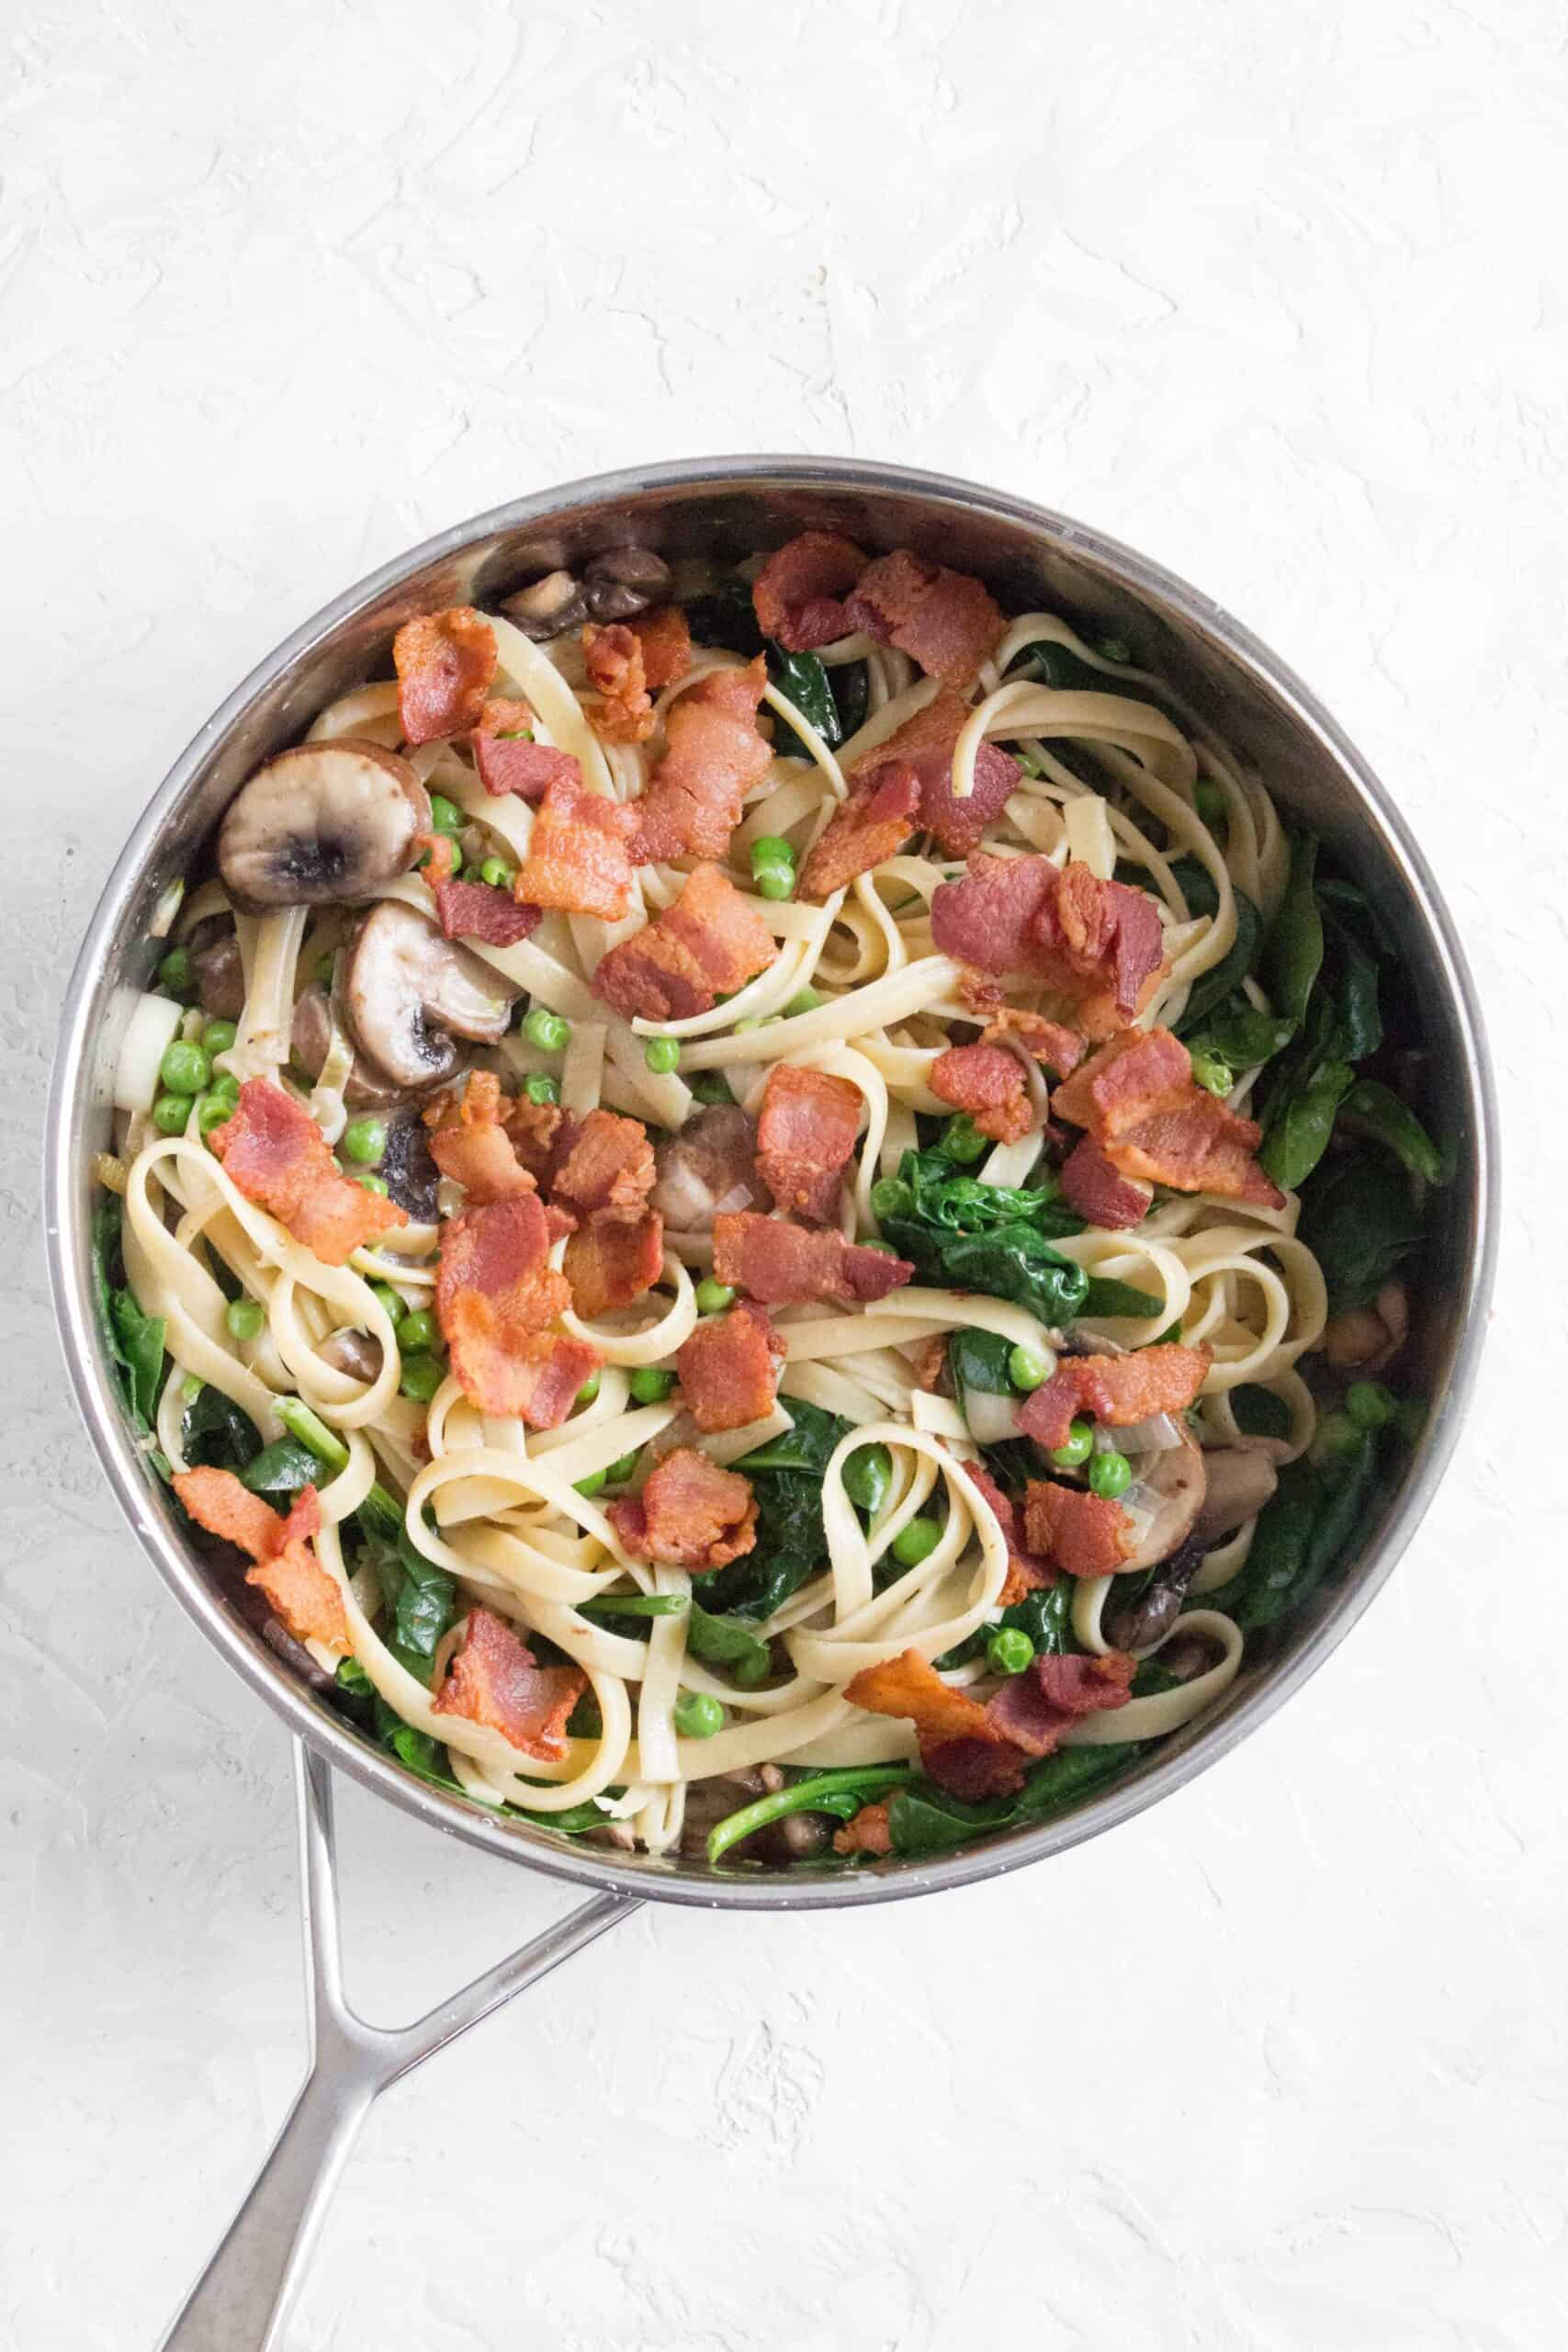 This Bacon, Mushroom, Spinach Pasta makes dinner time super easy! Delicious, filling, and full of flavour, it takes less than 30 minutes to make!